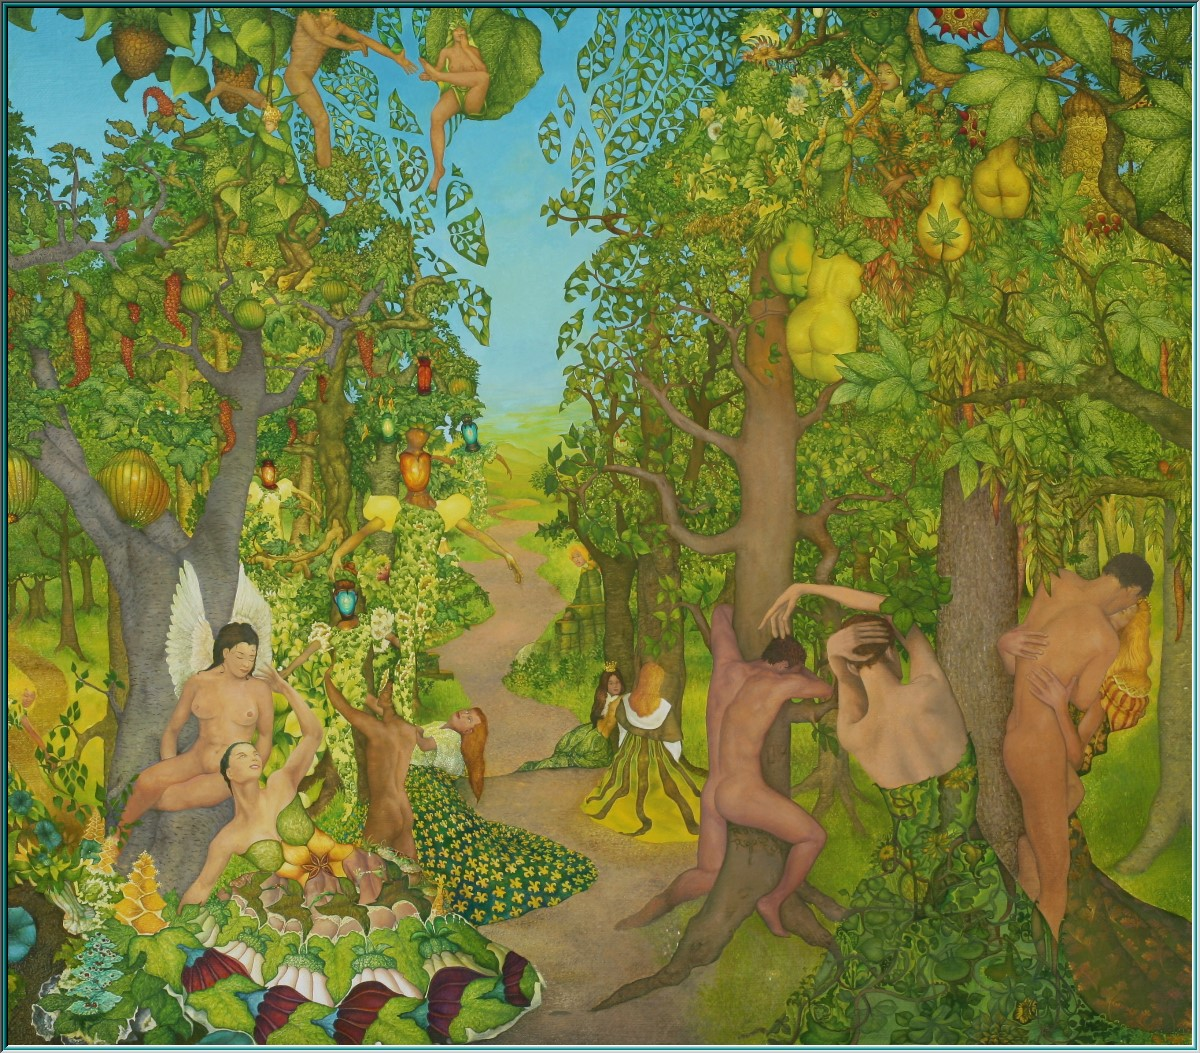 Adam and Eve, the Garden of Eden, eroticism, Expulsion from Paradise,Festival of Lights, plant kingdom, magic garden, oil painting surrealism